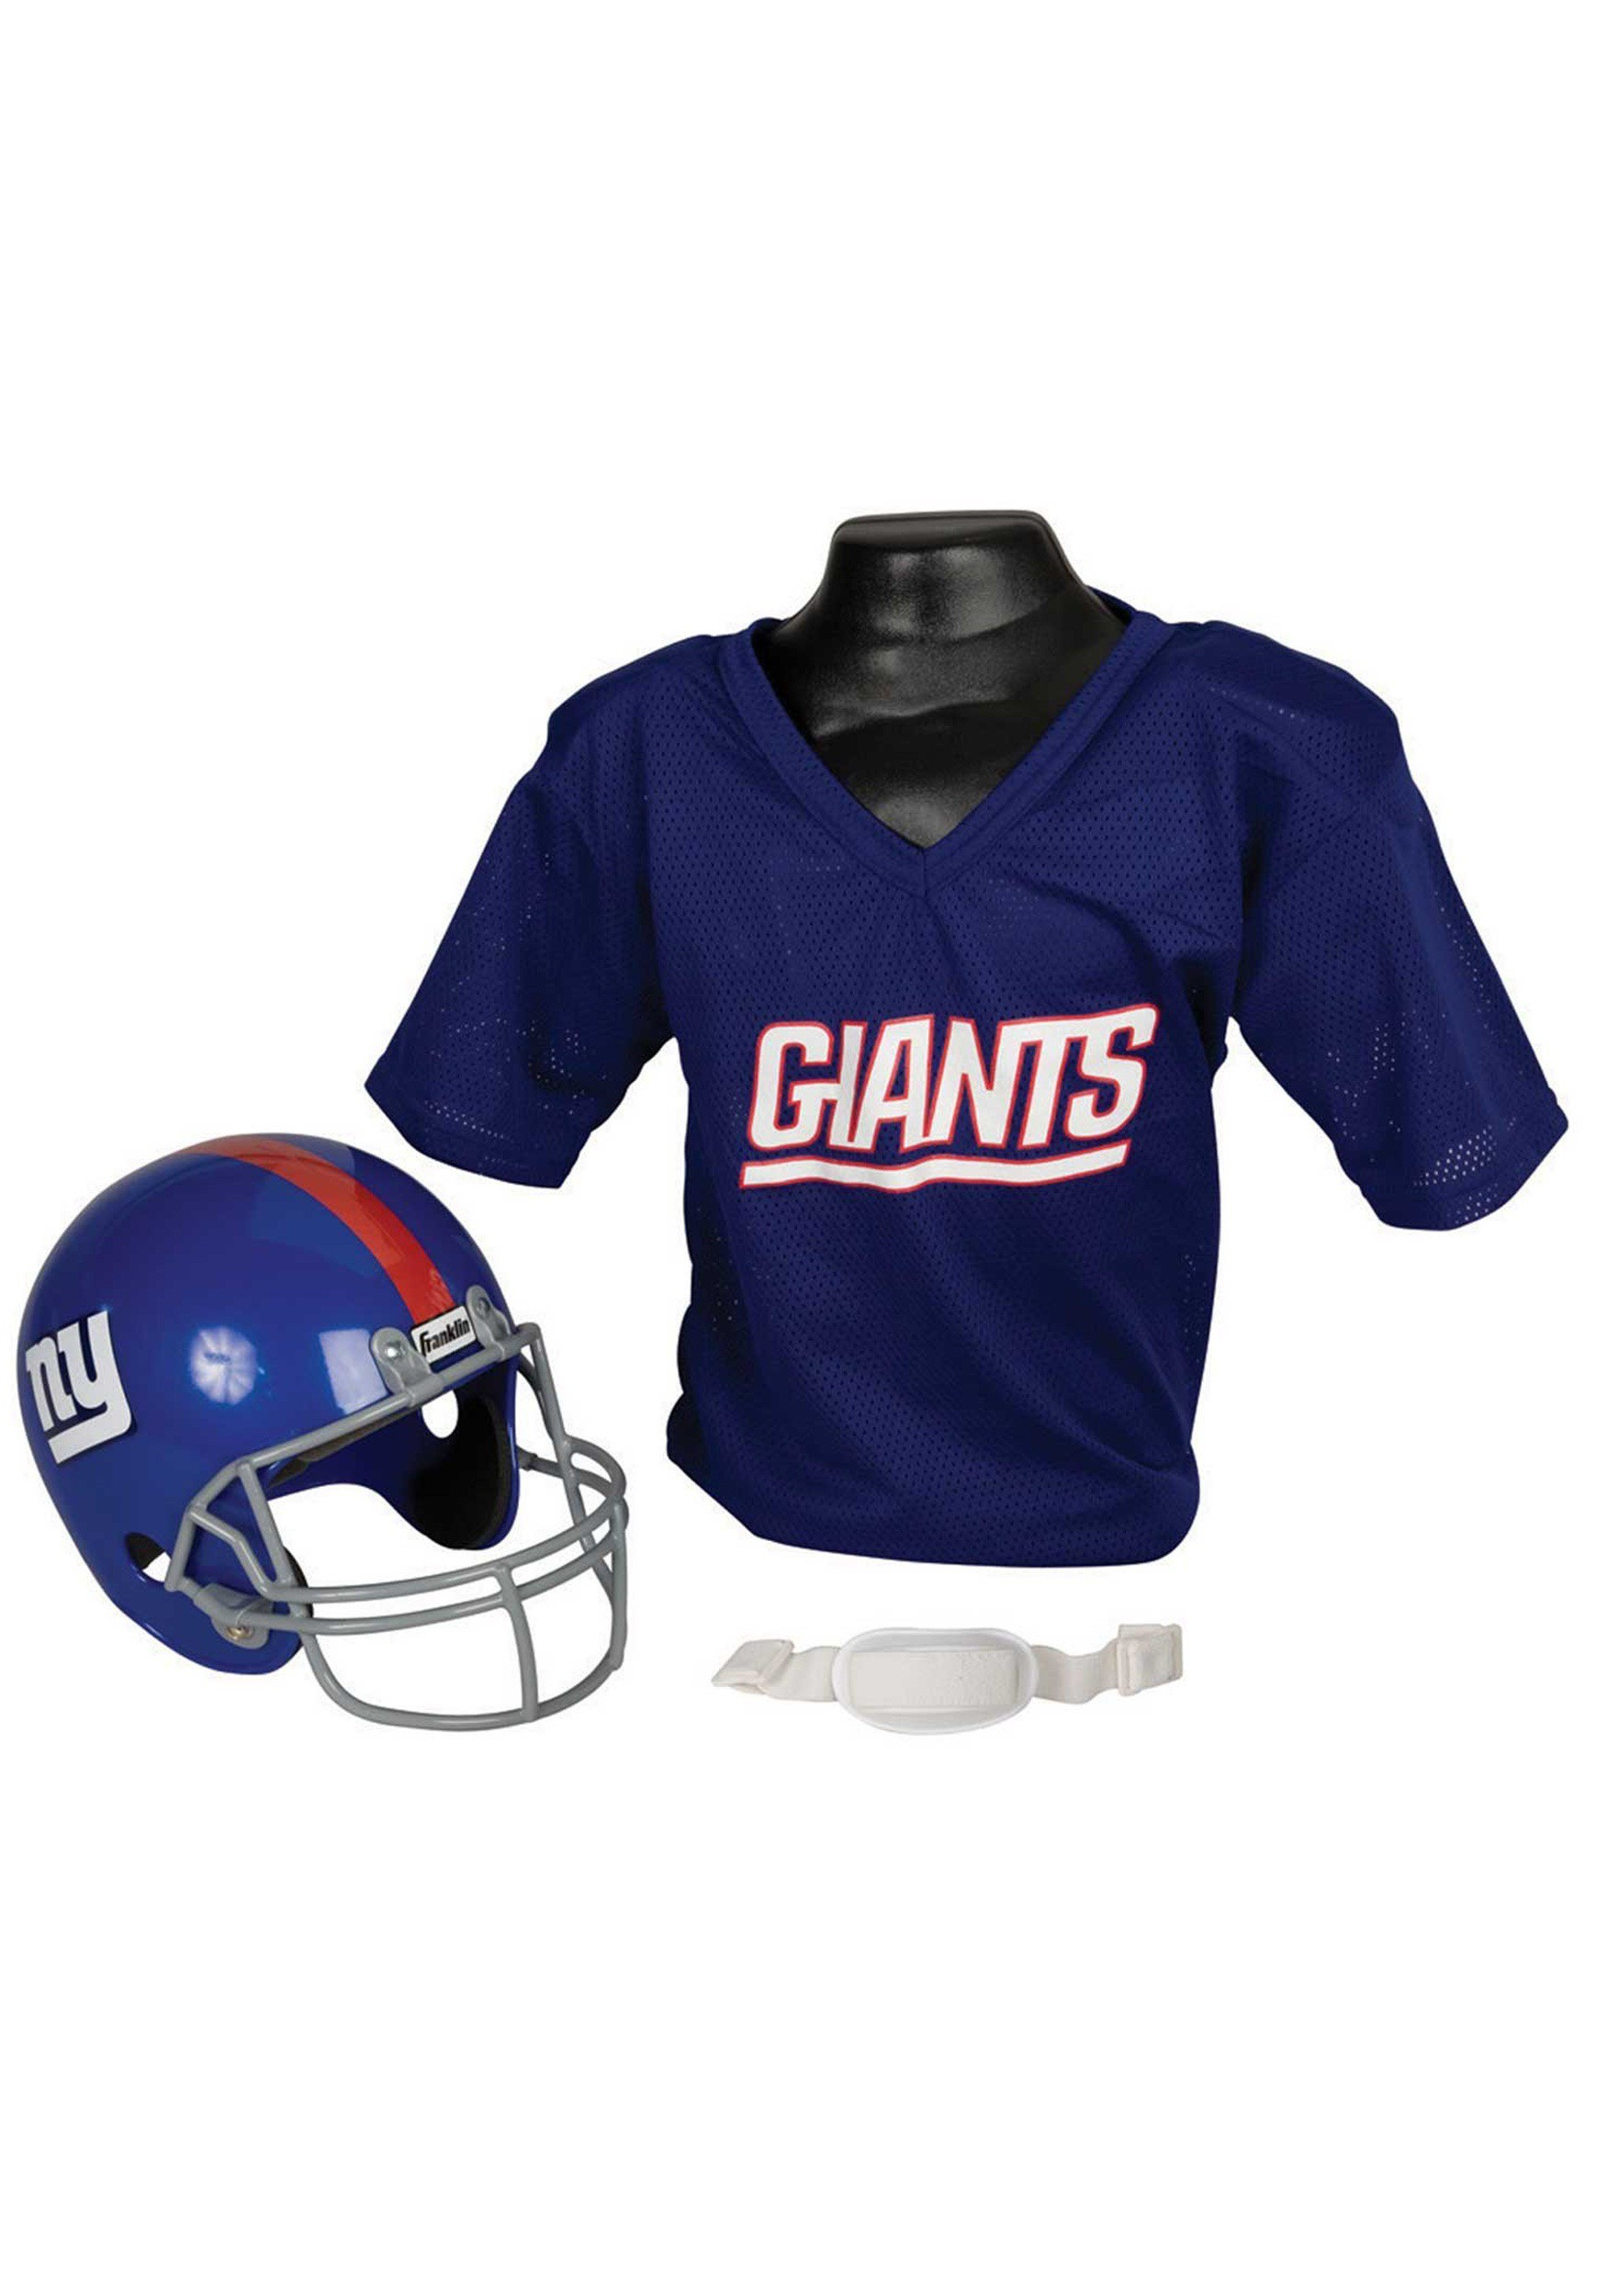 Child NFL New York Giants Helmet and Jersey Costume Set df0015796